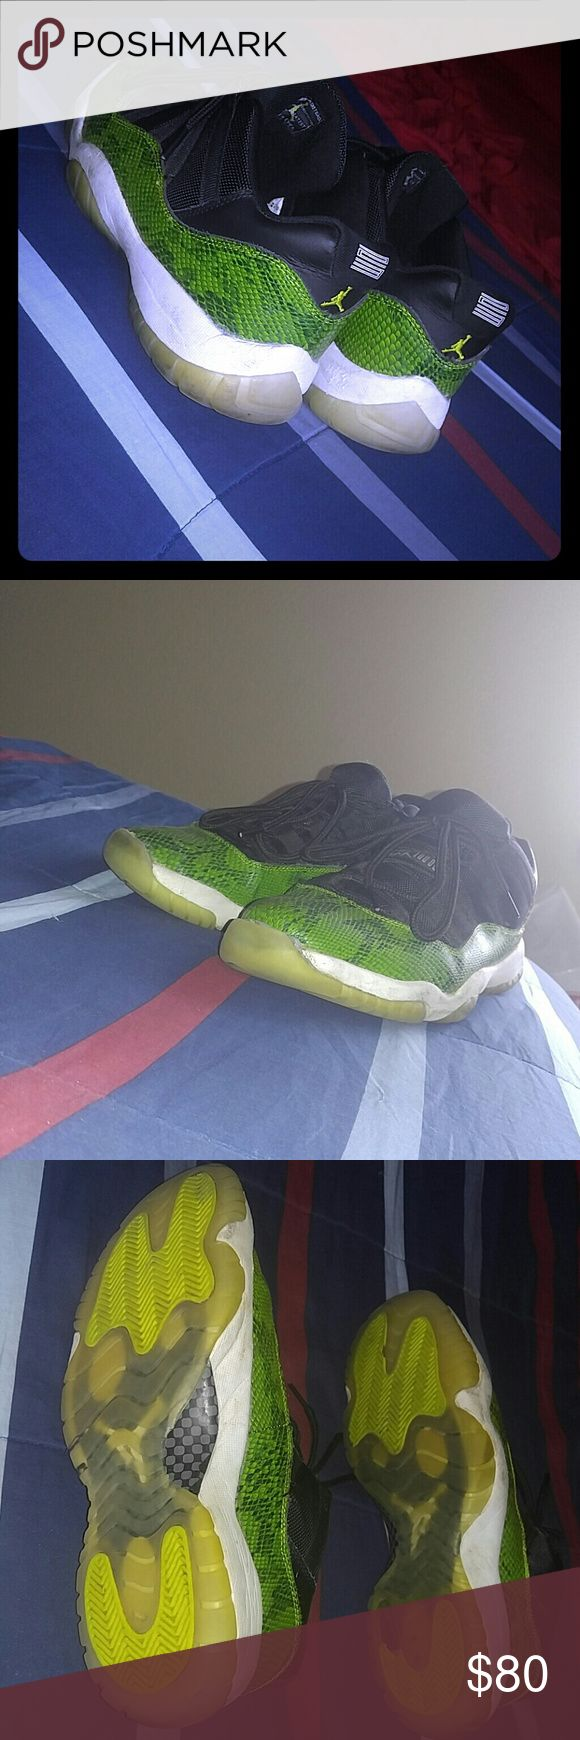 Authentic Jordan 11s (snakeskin edition) Green and black Jordan Snakeskin 11s Originally $220 Currently $80 Trading and pricing are both negotiable Jordan Shoes Sneakers